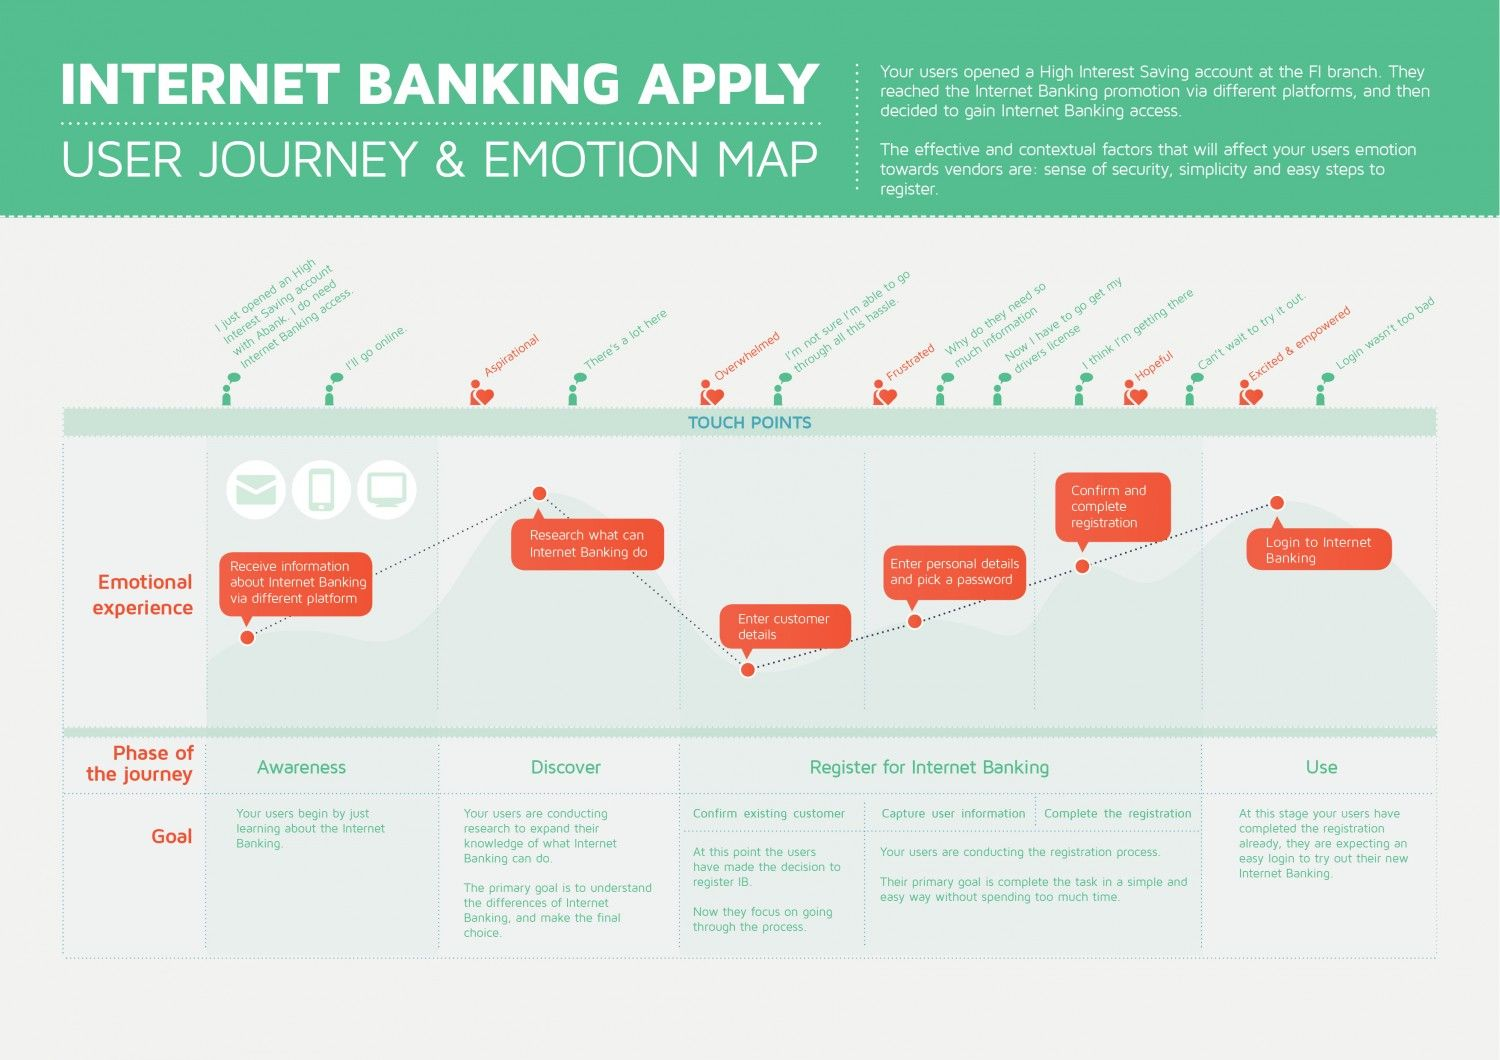 17 Best images about User journeys on Pinterest | Itunes, Map it ...